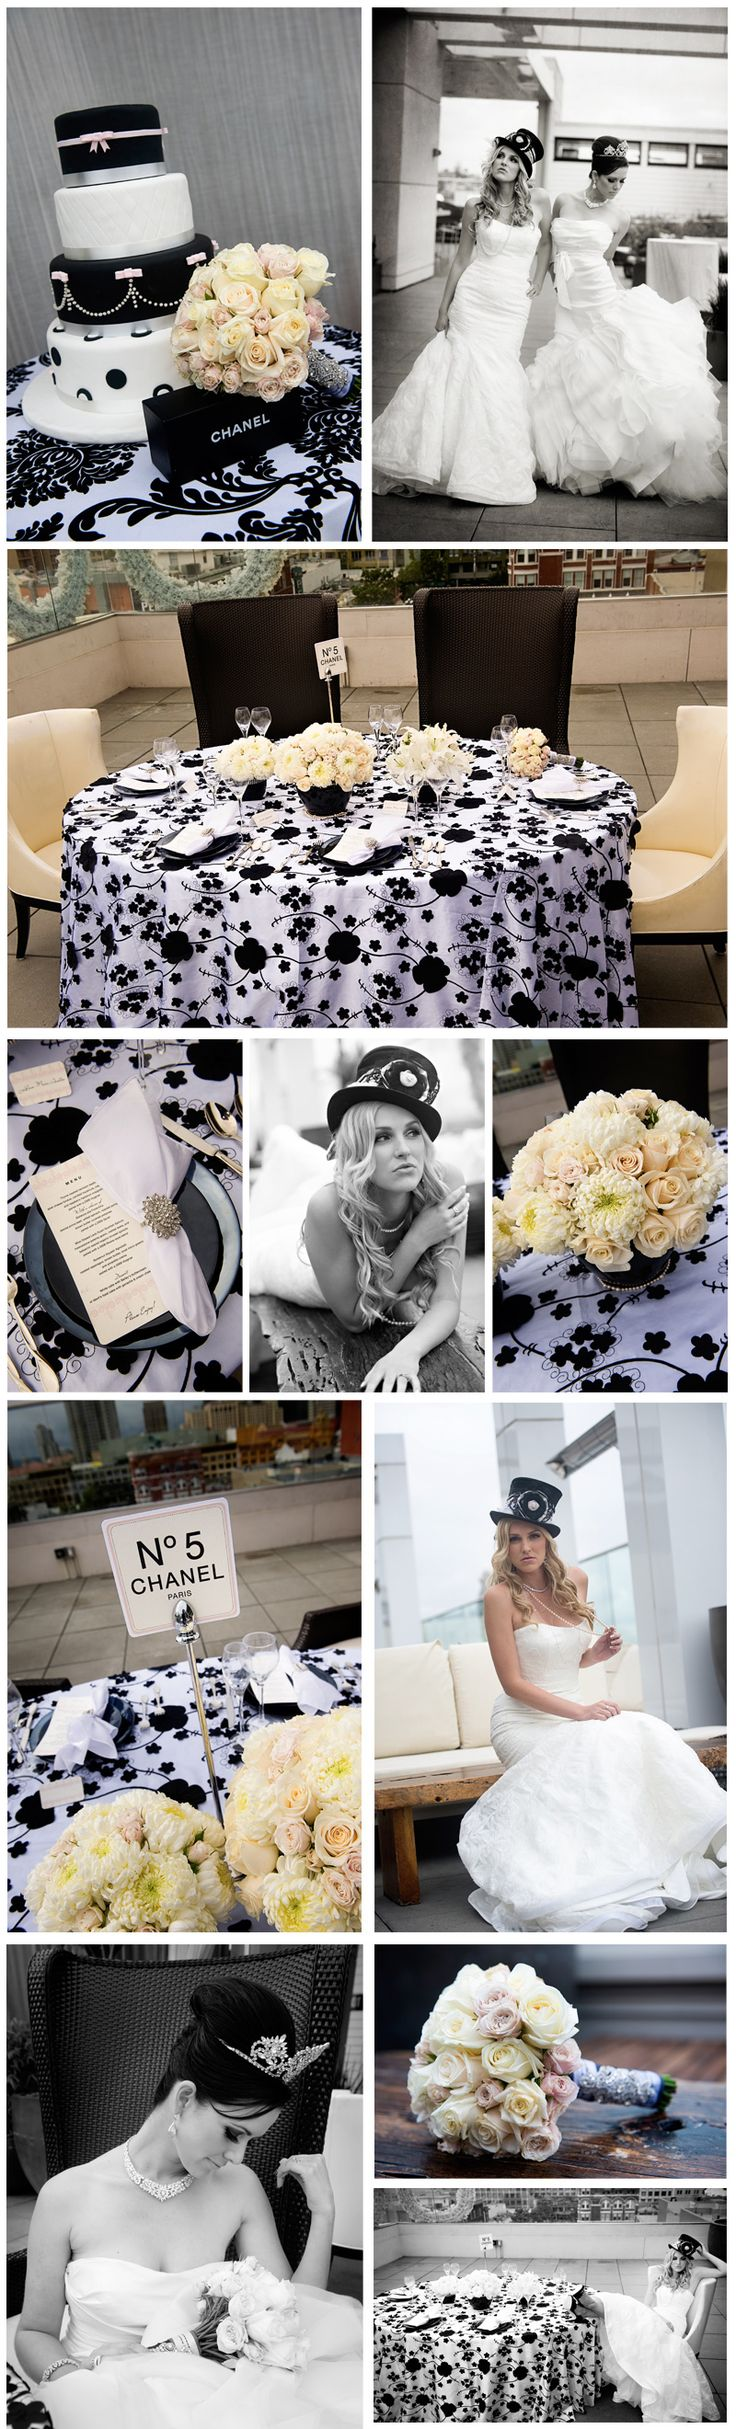 Never mind the Chanel, black & white with a sparkly tiara? Love!